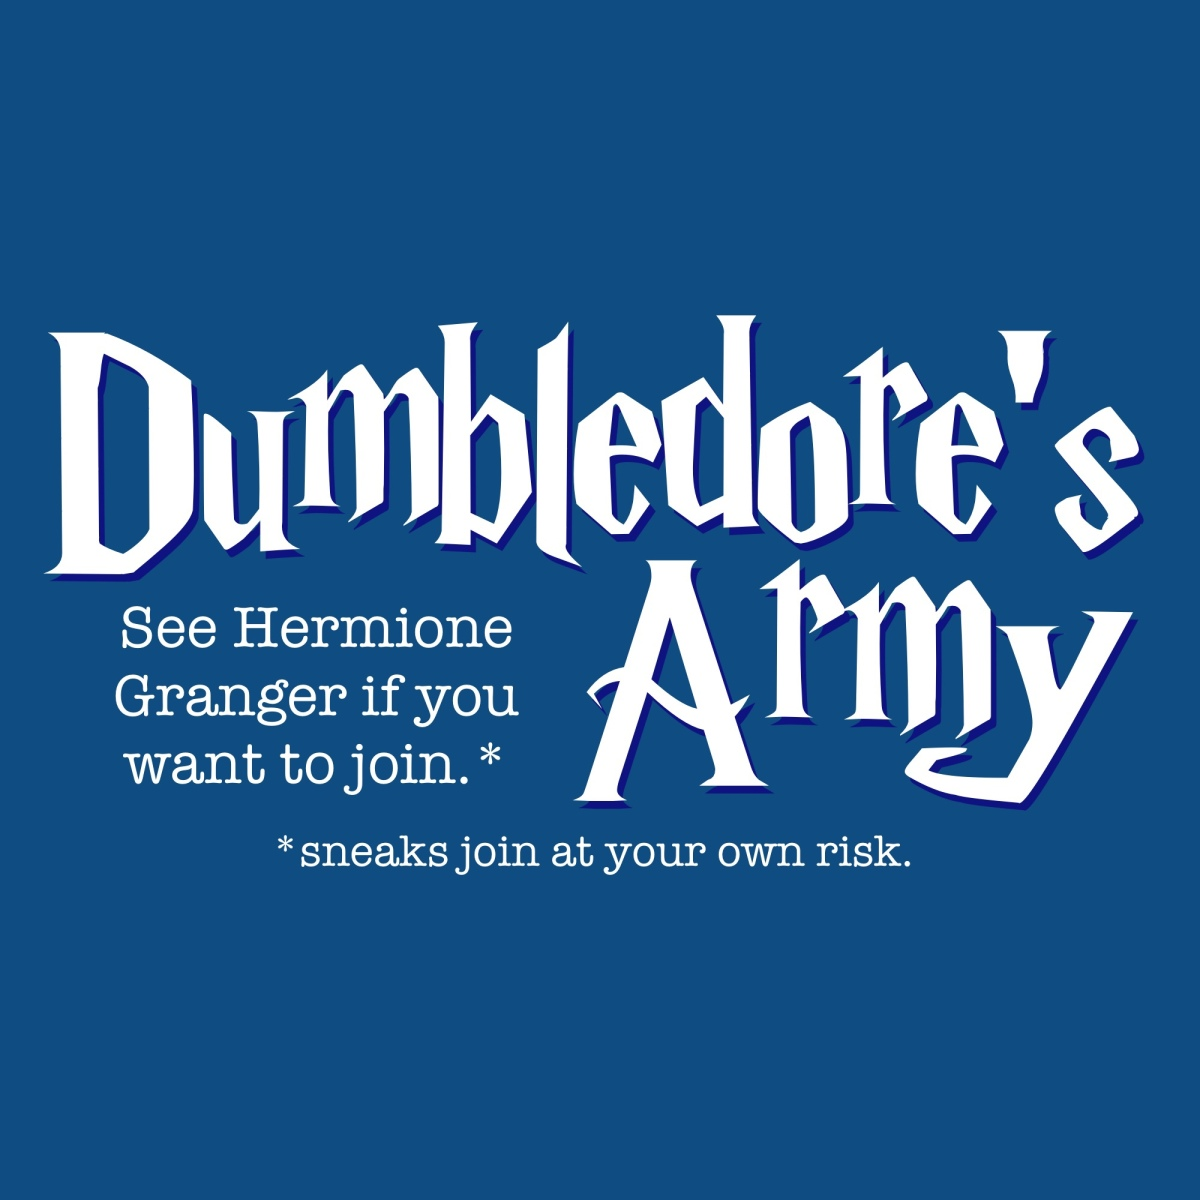 """Text on blue background, reads """"Dumbledore's Army: See Hermione Granger if you want to join.*"""" under * says sneaks join at your own risk"""